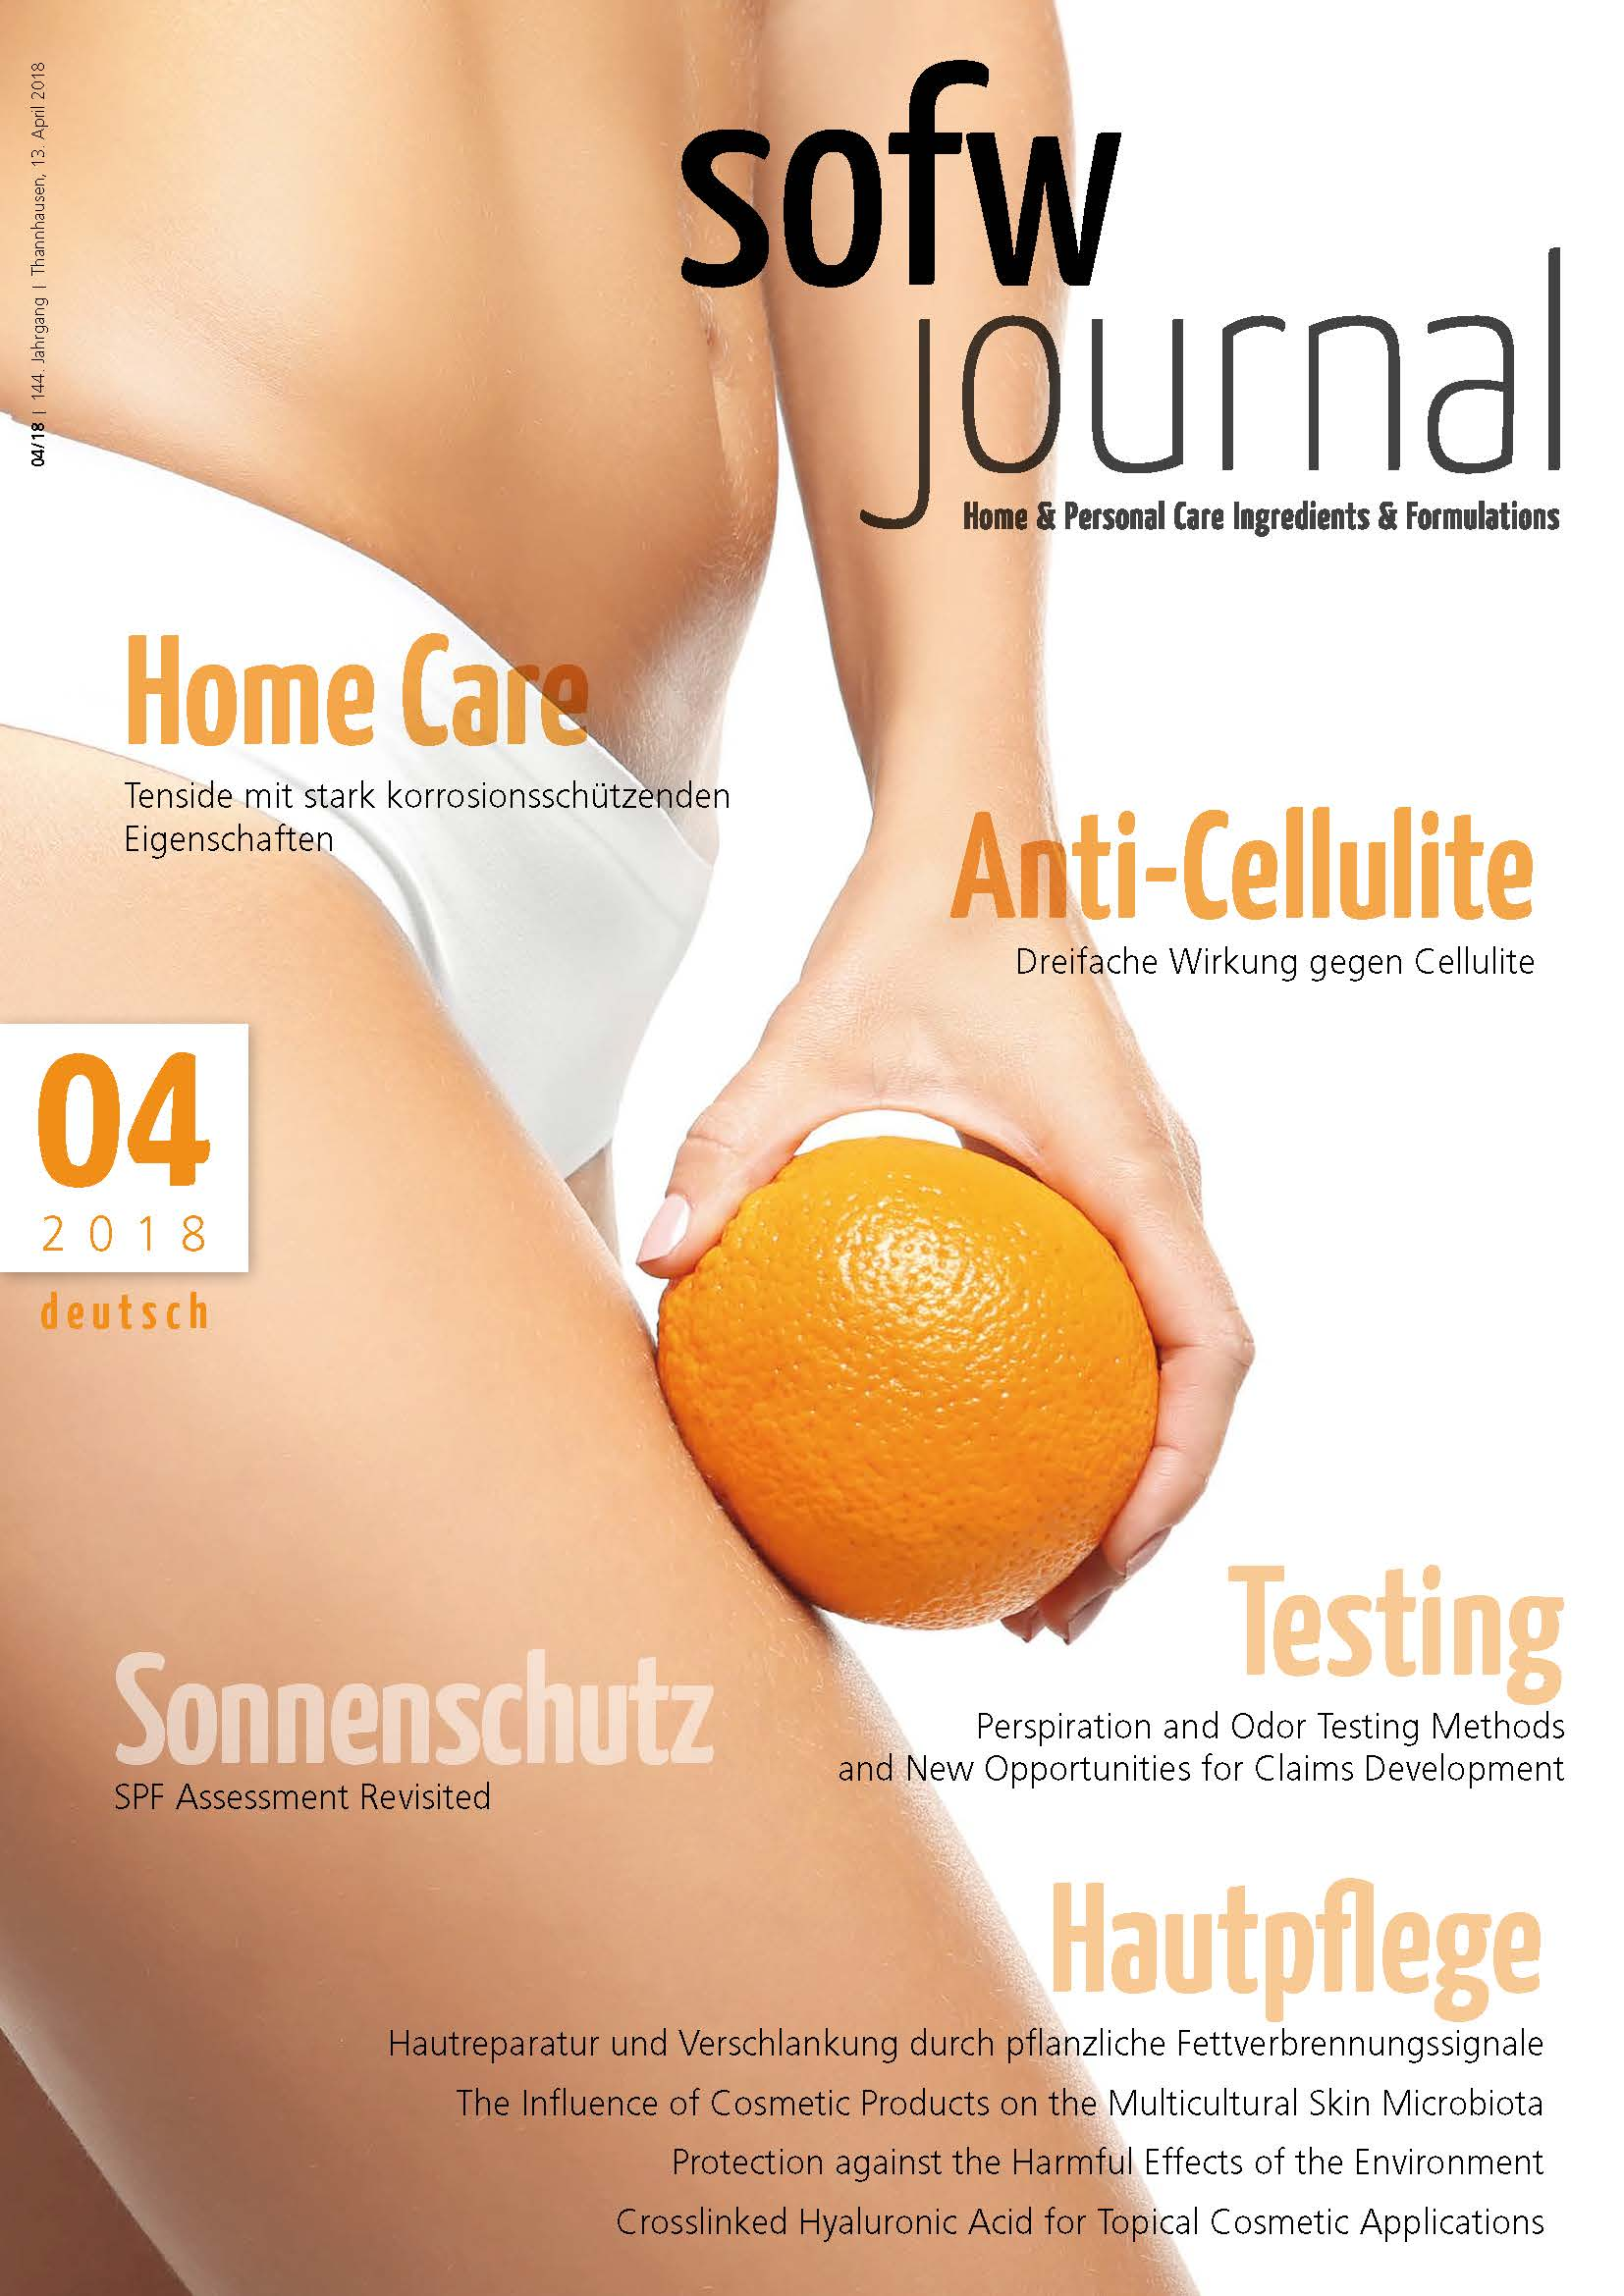 sofwjournal_de_2018_04_cover